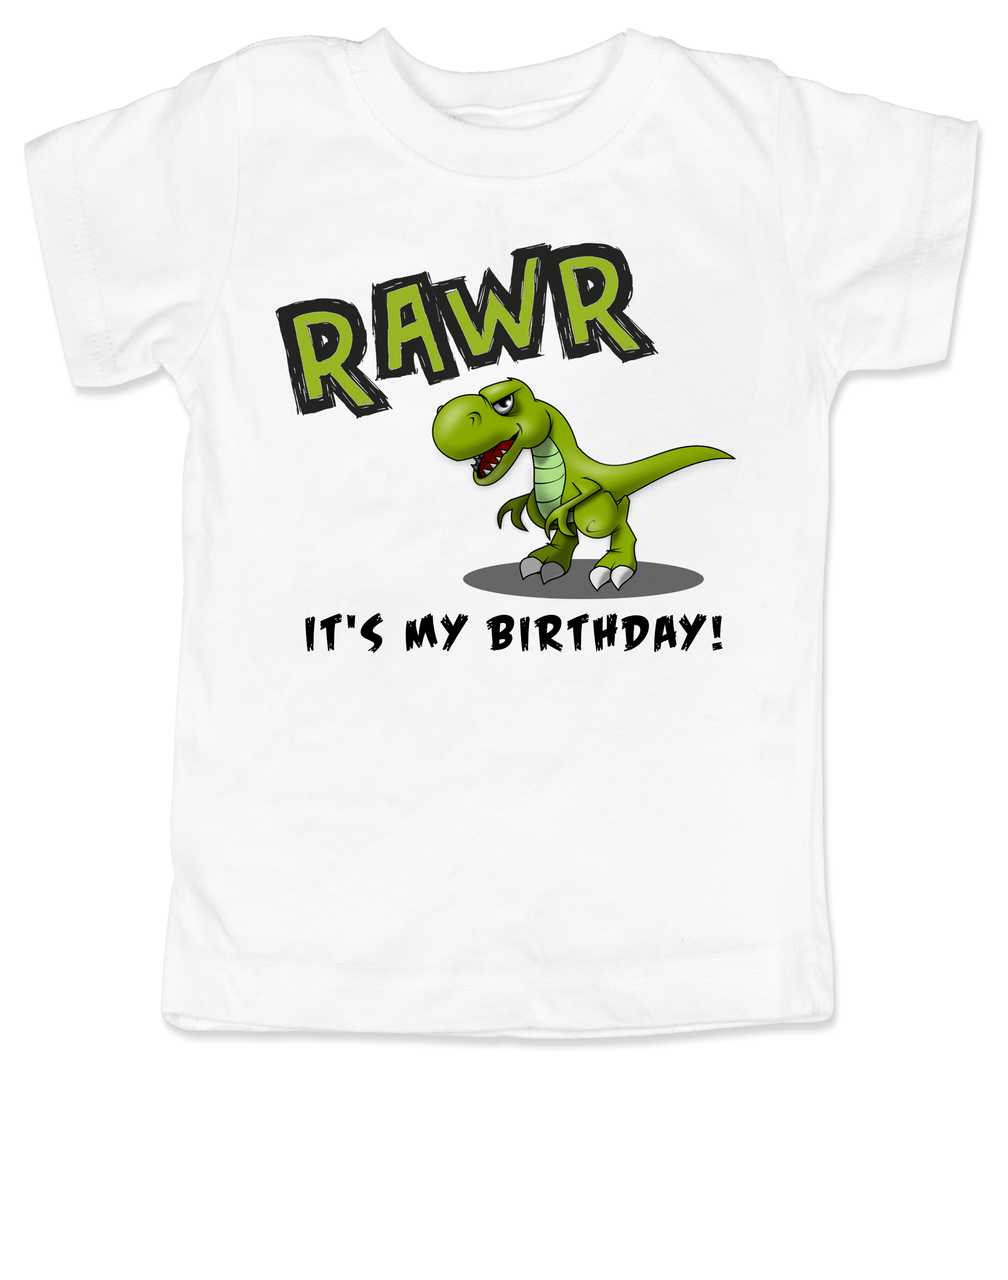 T Rex Rawr Its My Birthday Toddler Shirt Dinosaur Trex Custom